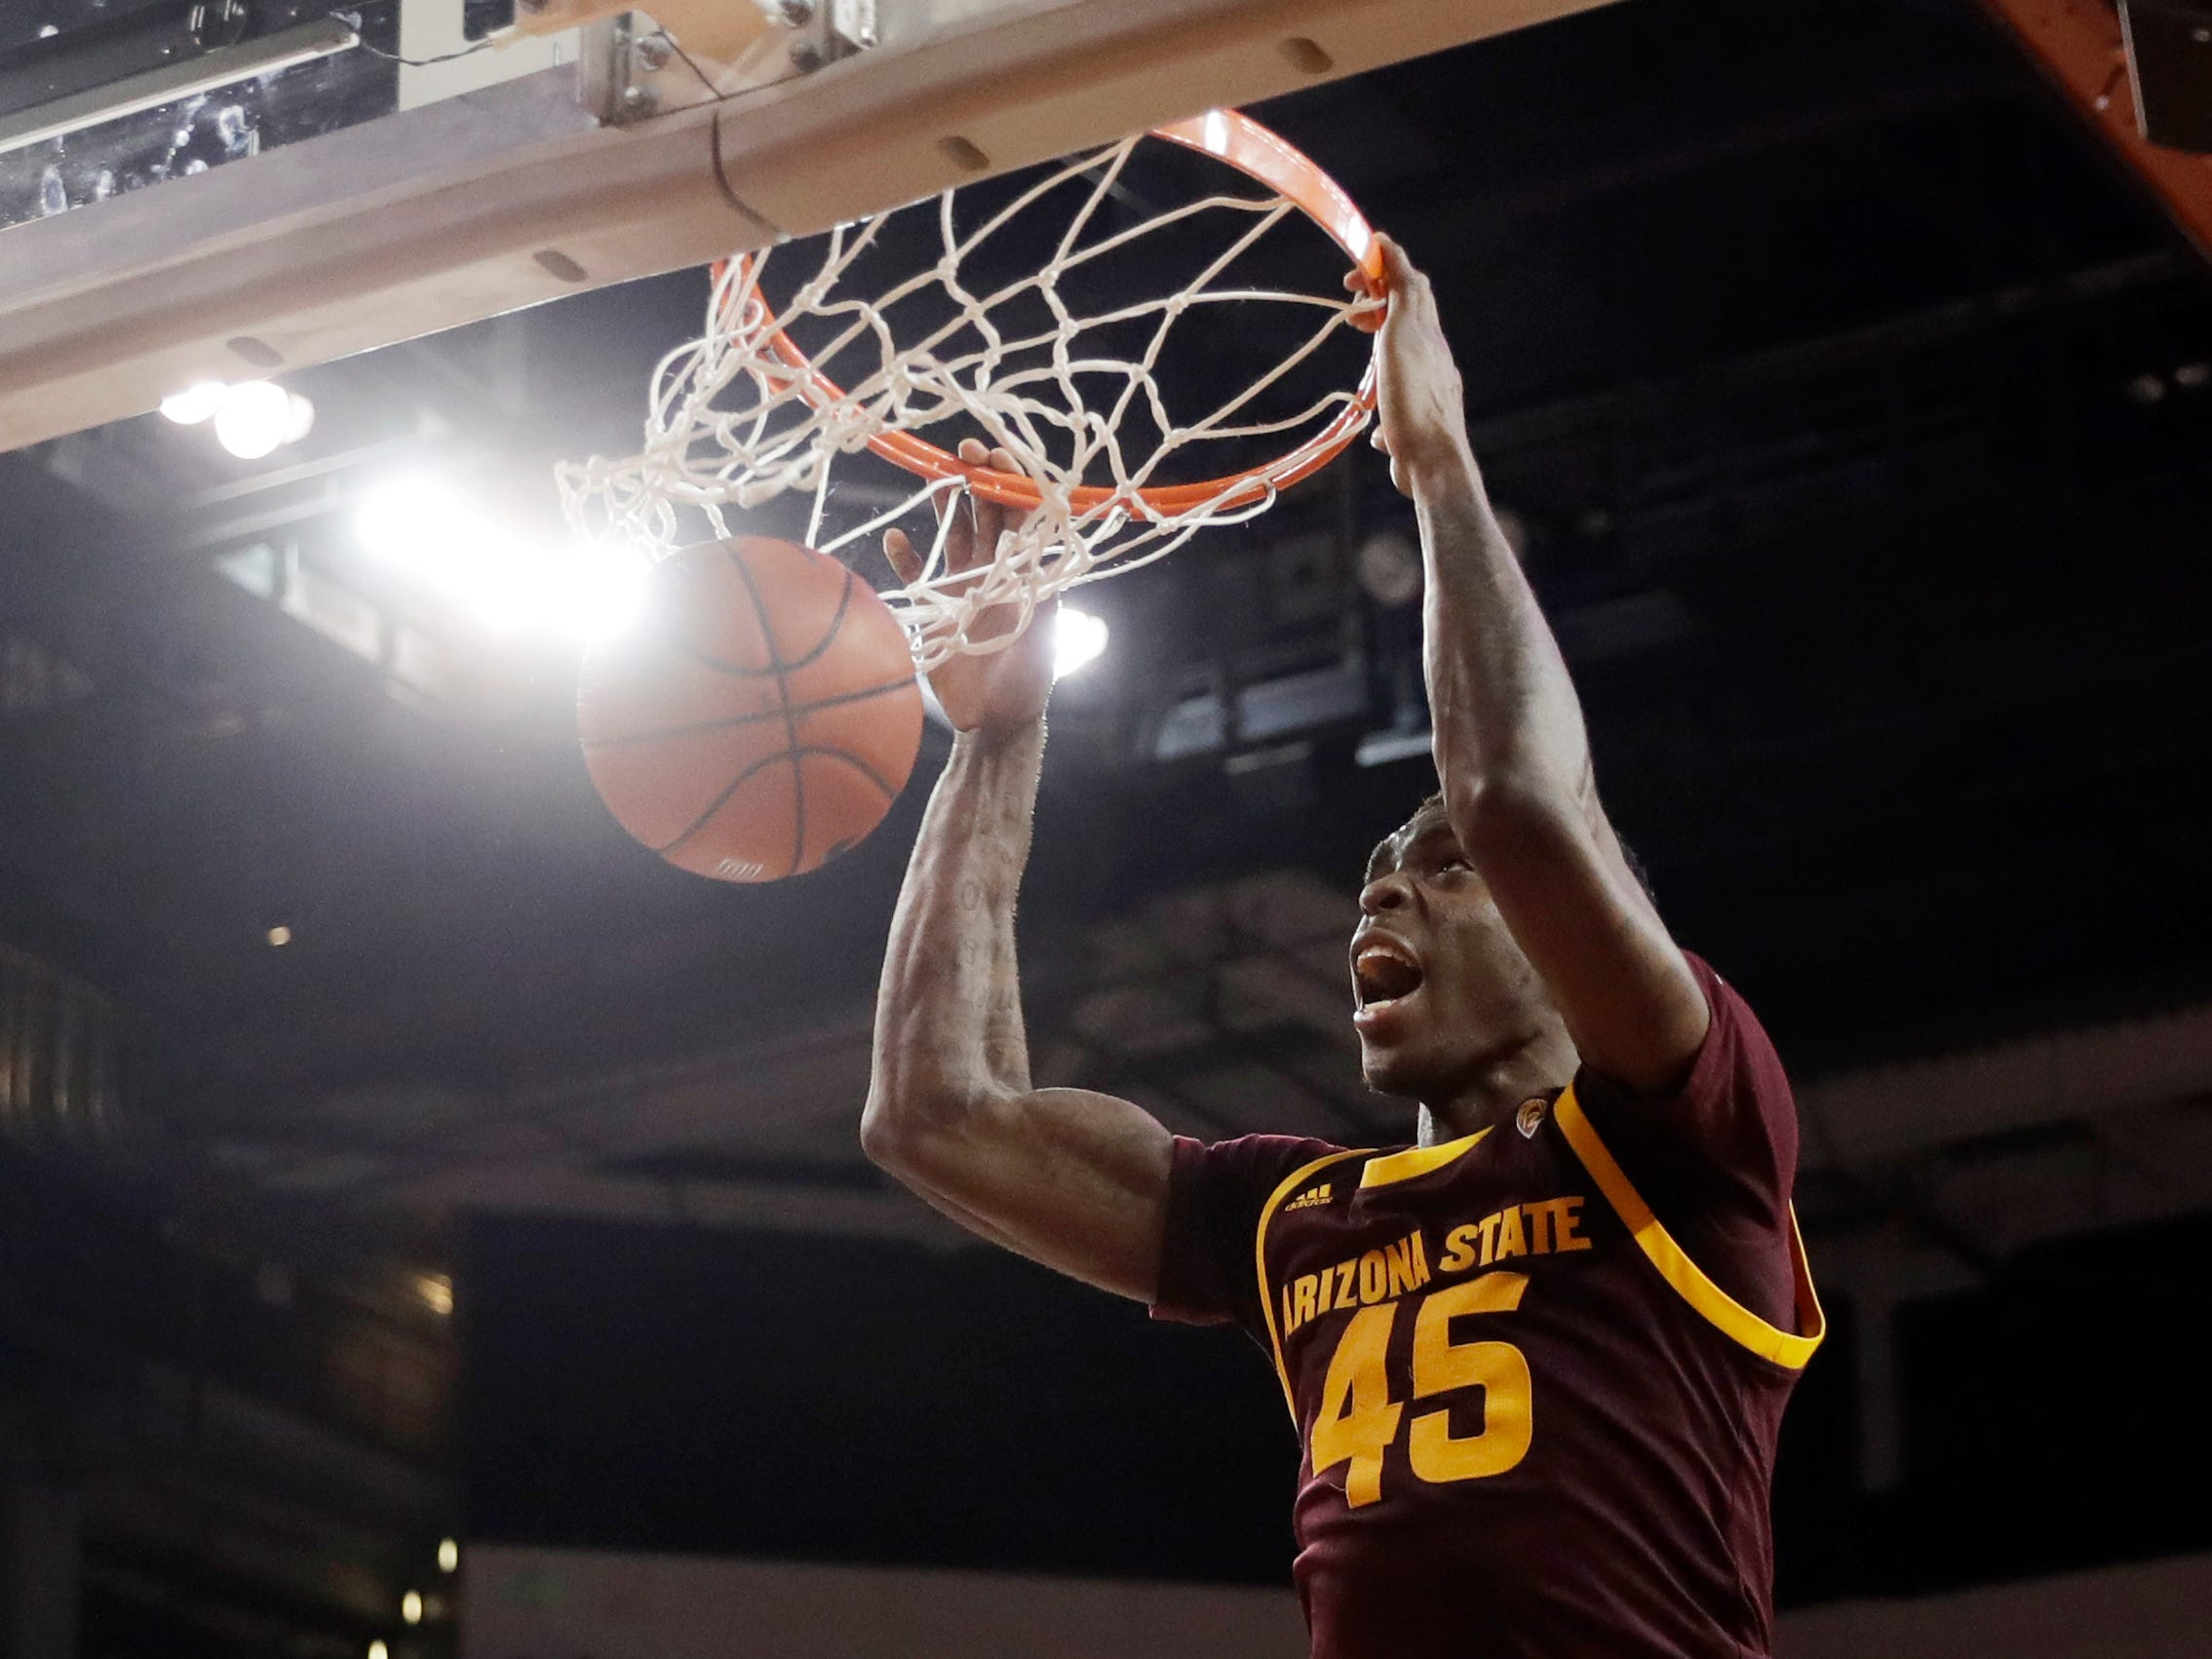 Arizona State forward Zylan Cheatham (45) dunks over Southern California forward J'Raan Brooks (33) during the second half of an NCAA college basketball game Saturday, Jan. 26, 2019, in Los Angeles.